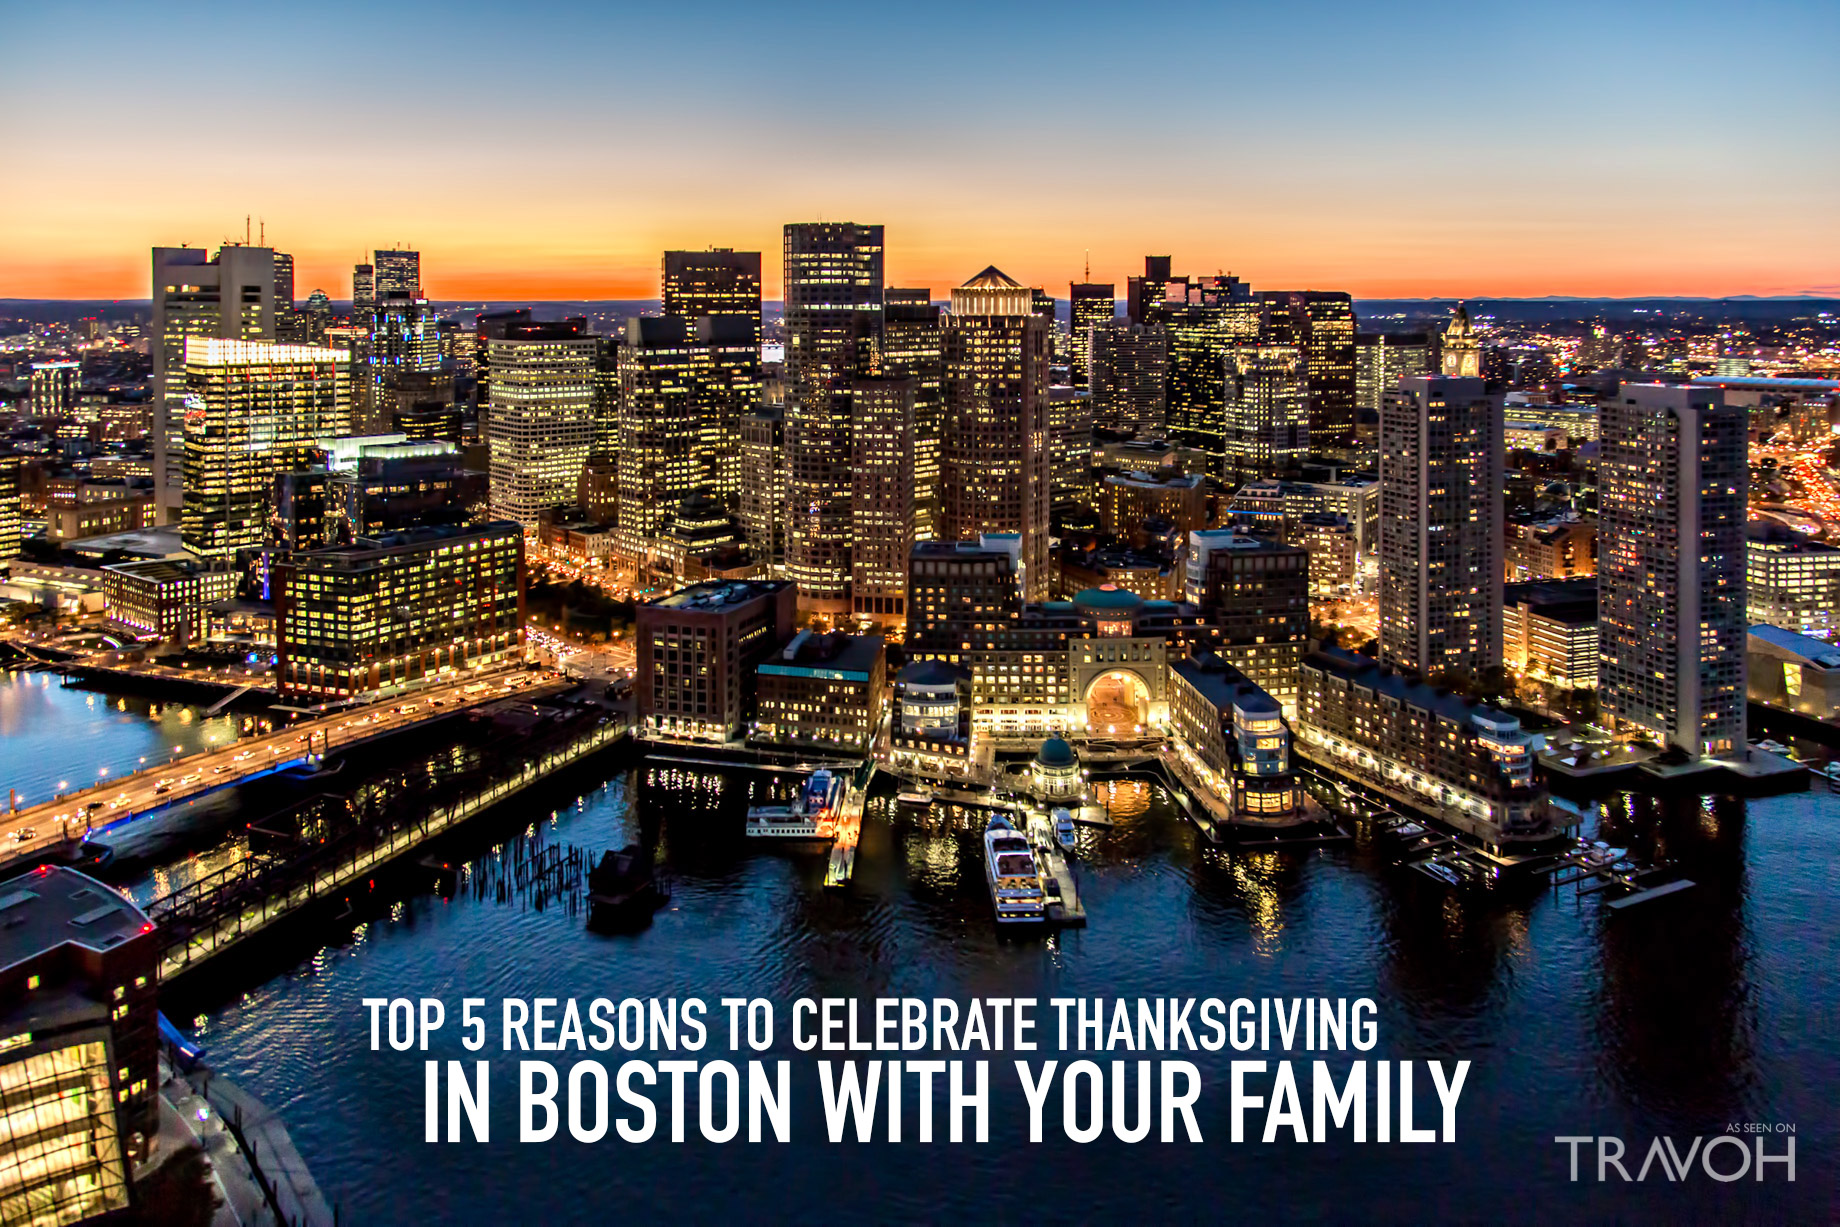 Top 5 Reasons to Celebrate Thanksgiving in Boston With Your Family